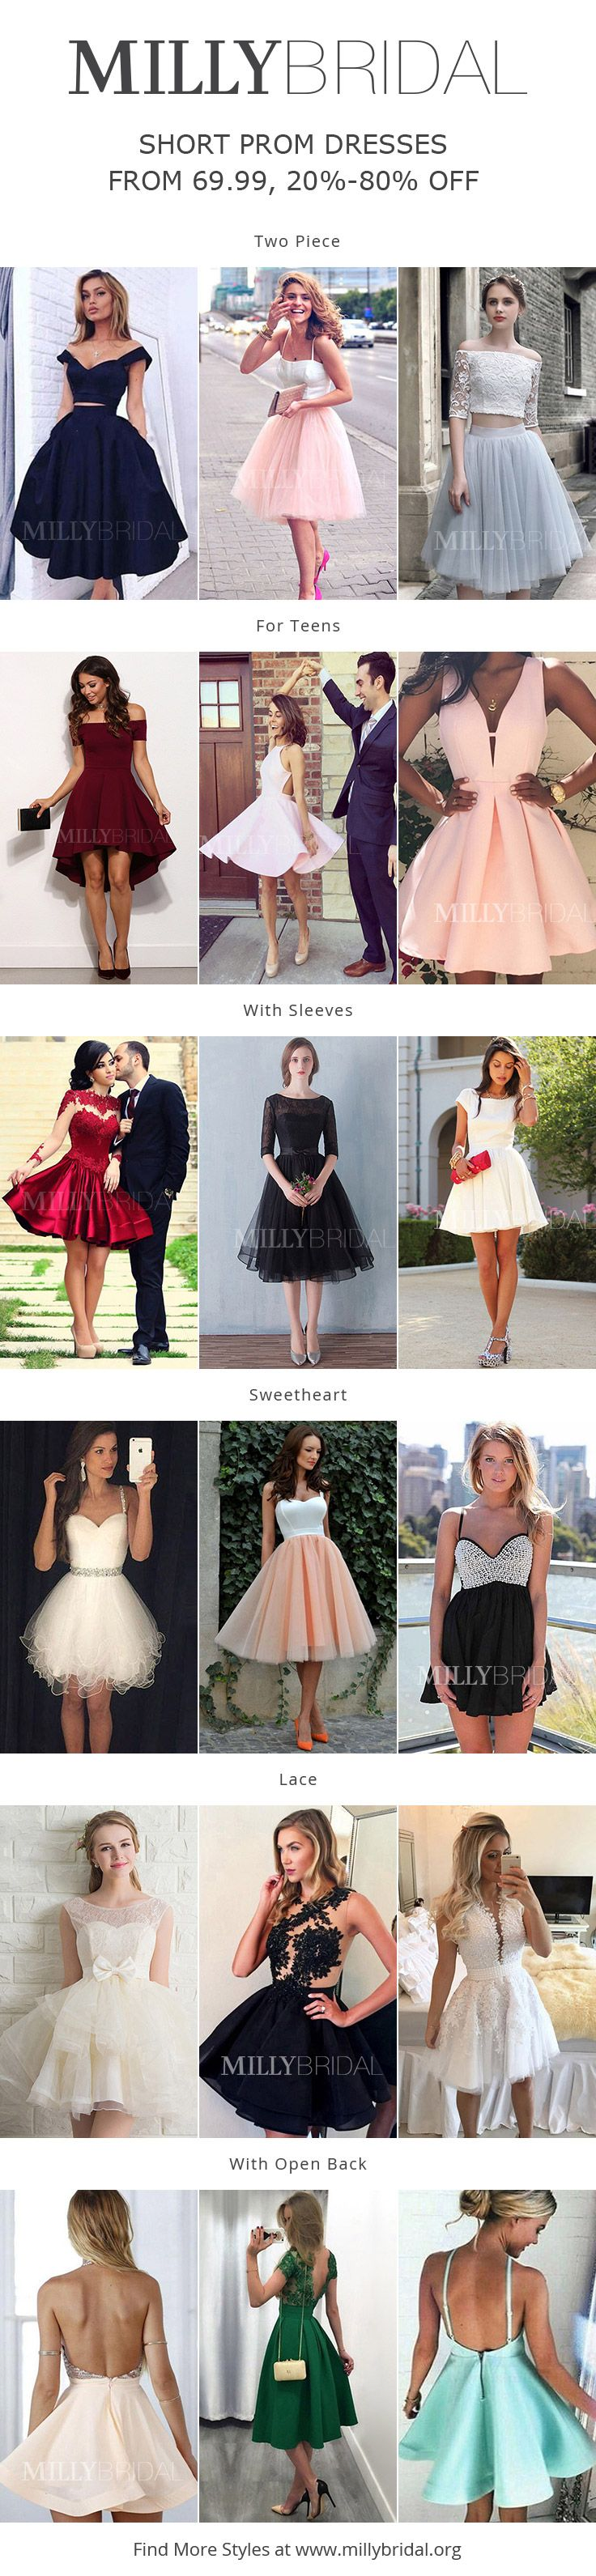 Short Prom Dresses 2018, Short Prom Dresses For Teens, Short Prom Dresses Two Piece, Short Prom Dresses With Sleeves, Short Prom Dresses Strapless, Short Prom Dresses Lace, Short Prom Dresses Cheap, Short Prom Dresses Simple